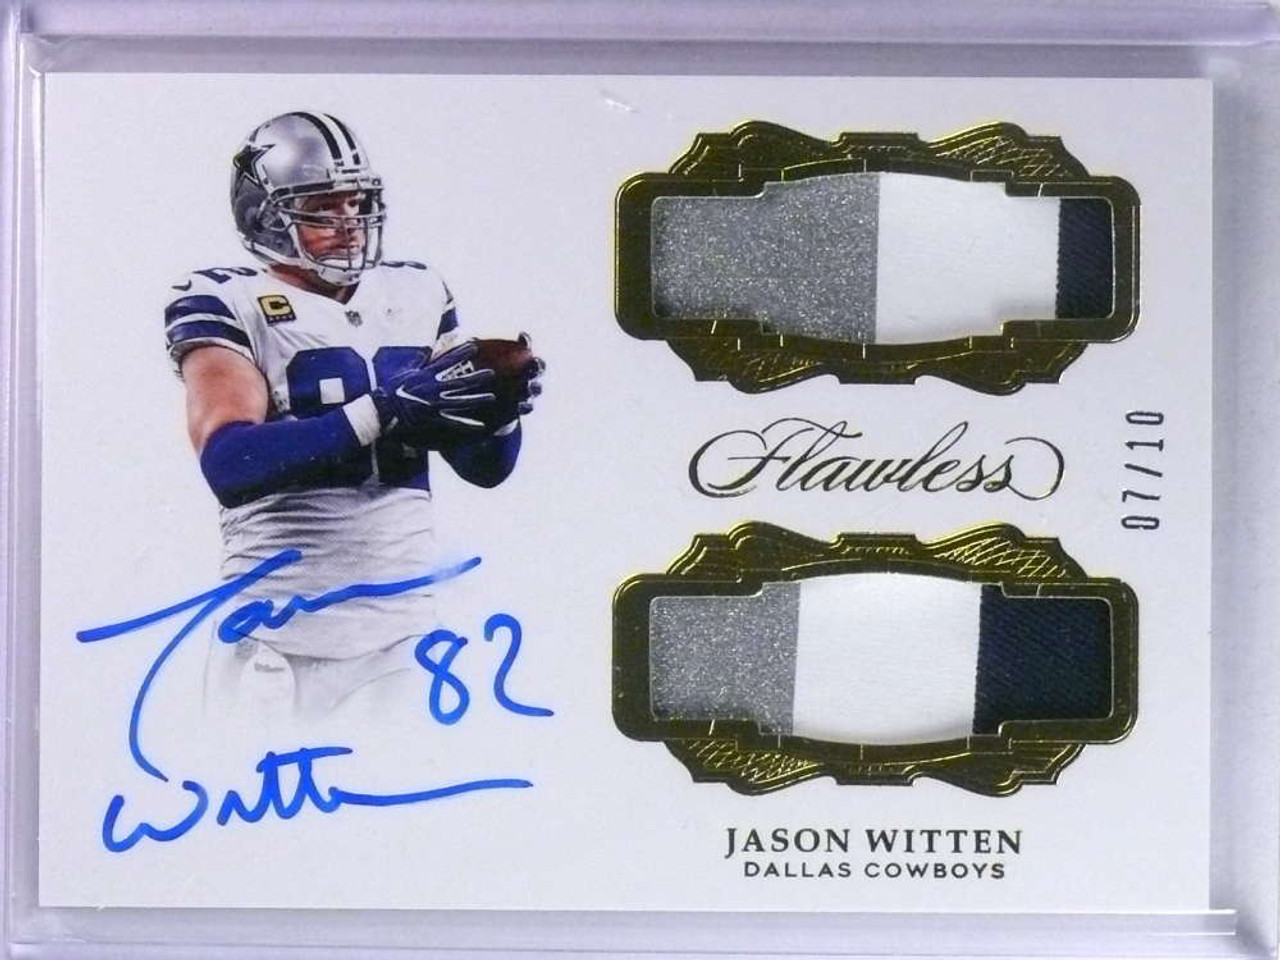 online store 105dd c948c 2018 Panini Flawless Jason Witten autograph auto dual patch #D07/10 #DP-WI  *76634